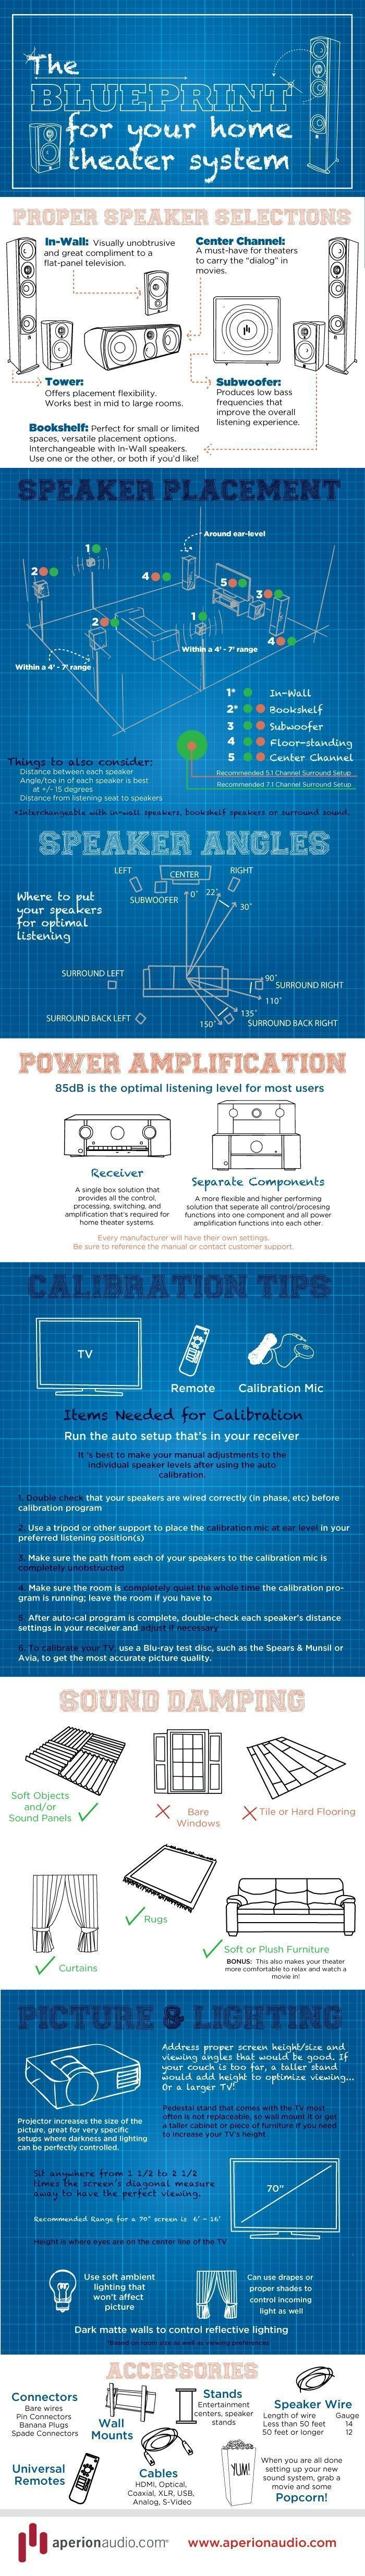 Best 25 blueprints for homes ideas on pinterest big cottages a blueprint for your home theater system infographic basement hometheatertips technologyforyourhome malvernweather Images